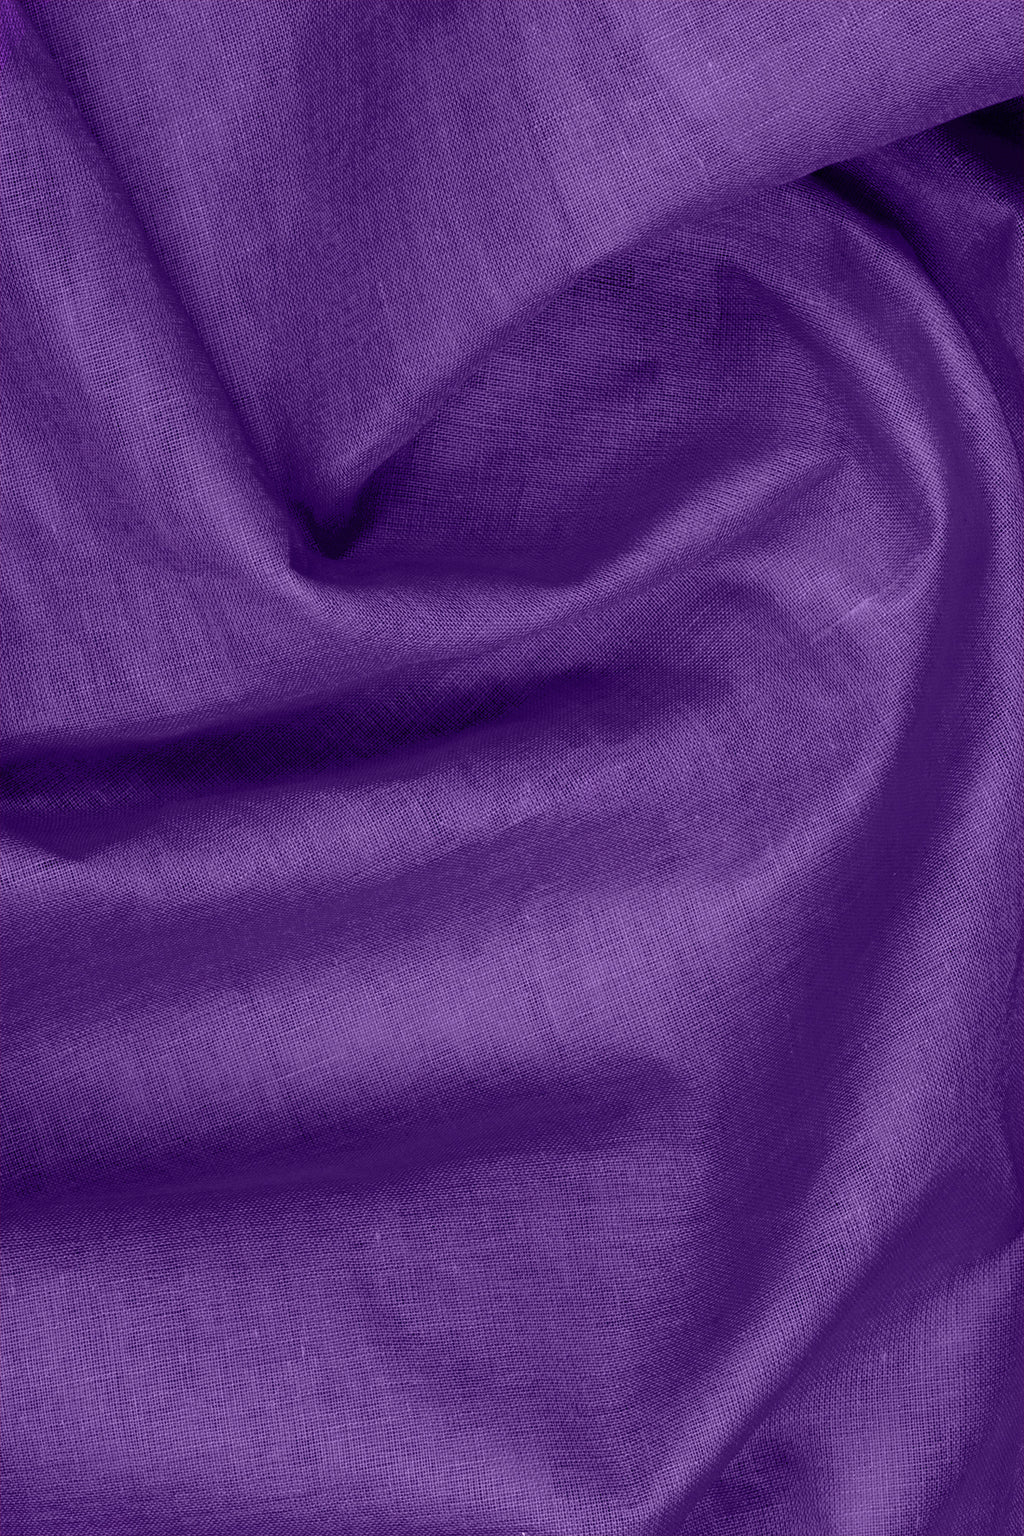 Purple Turban Cloth